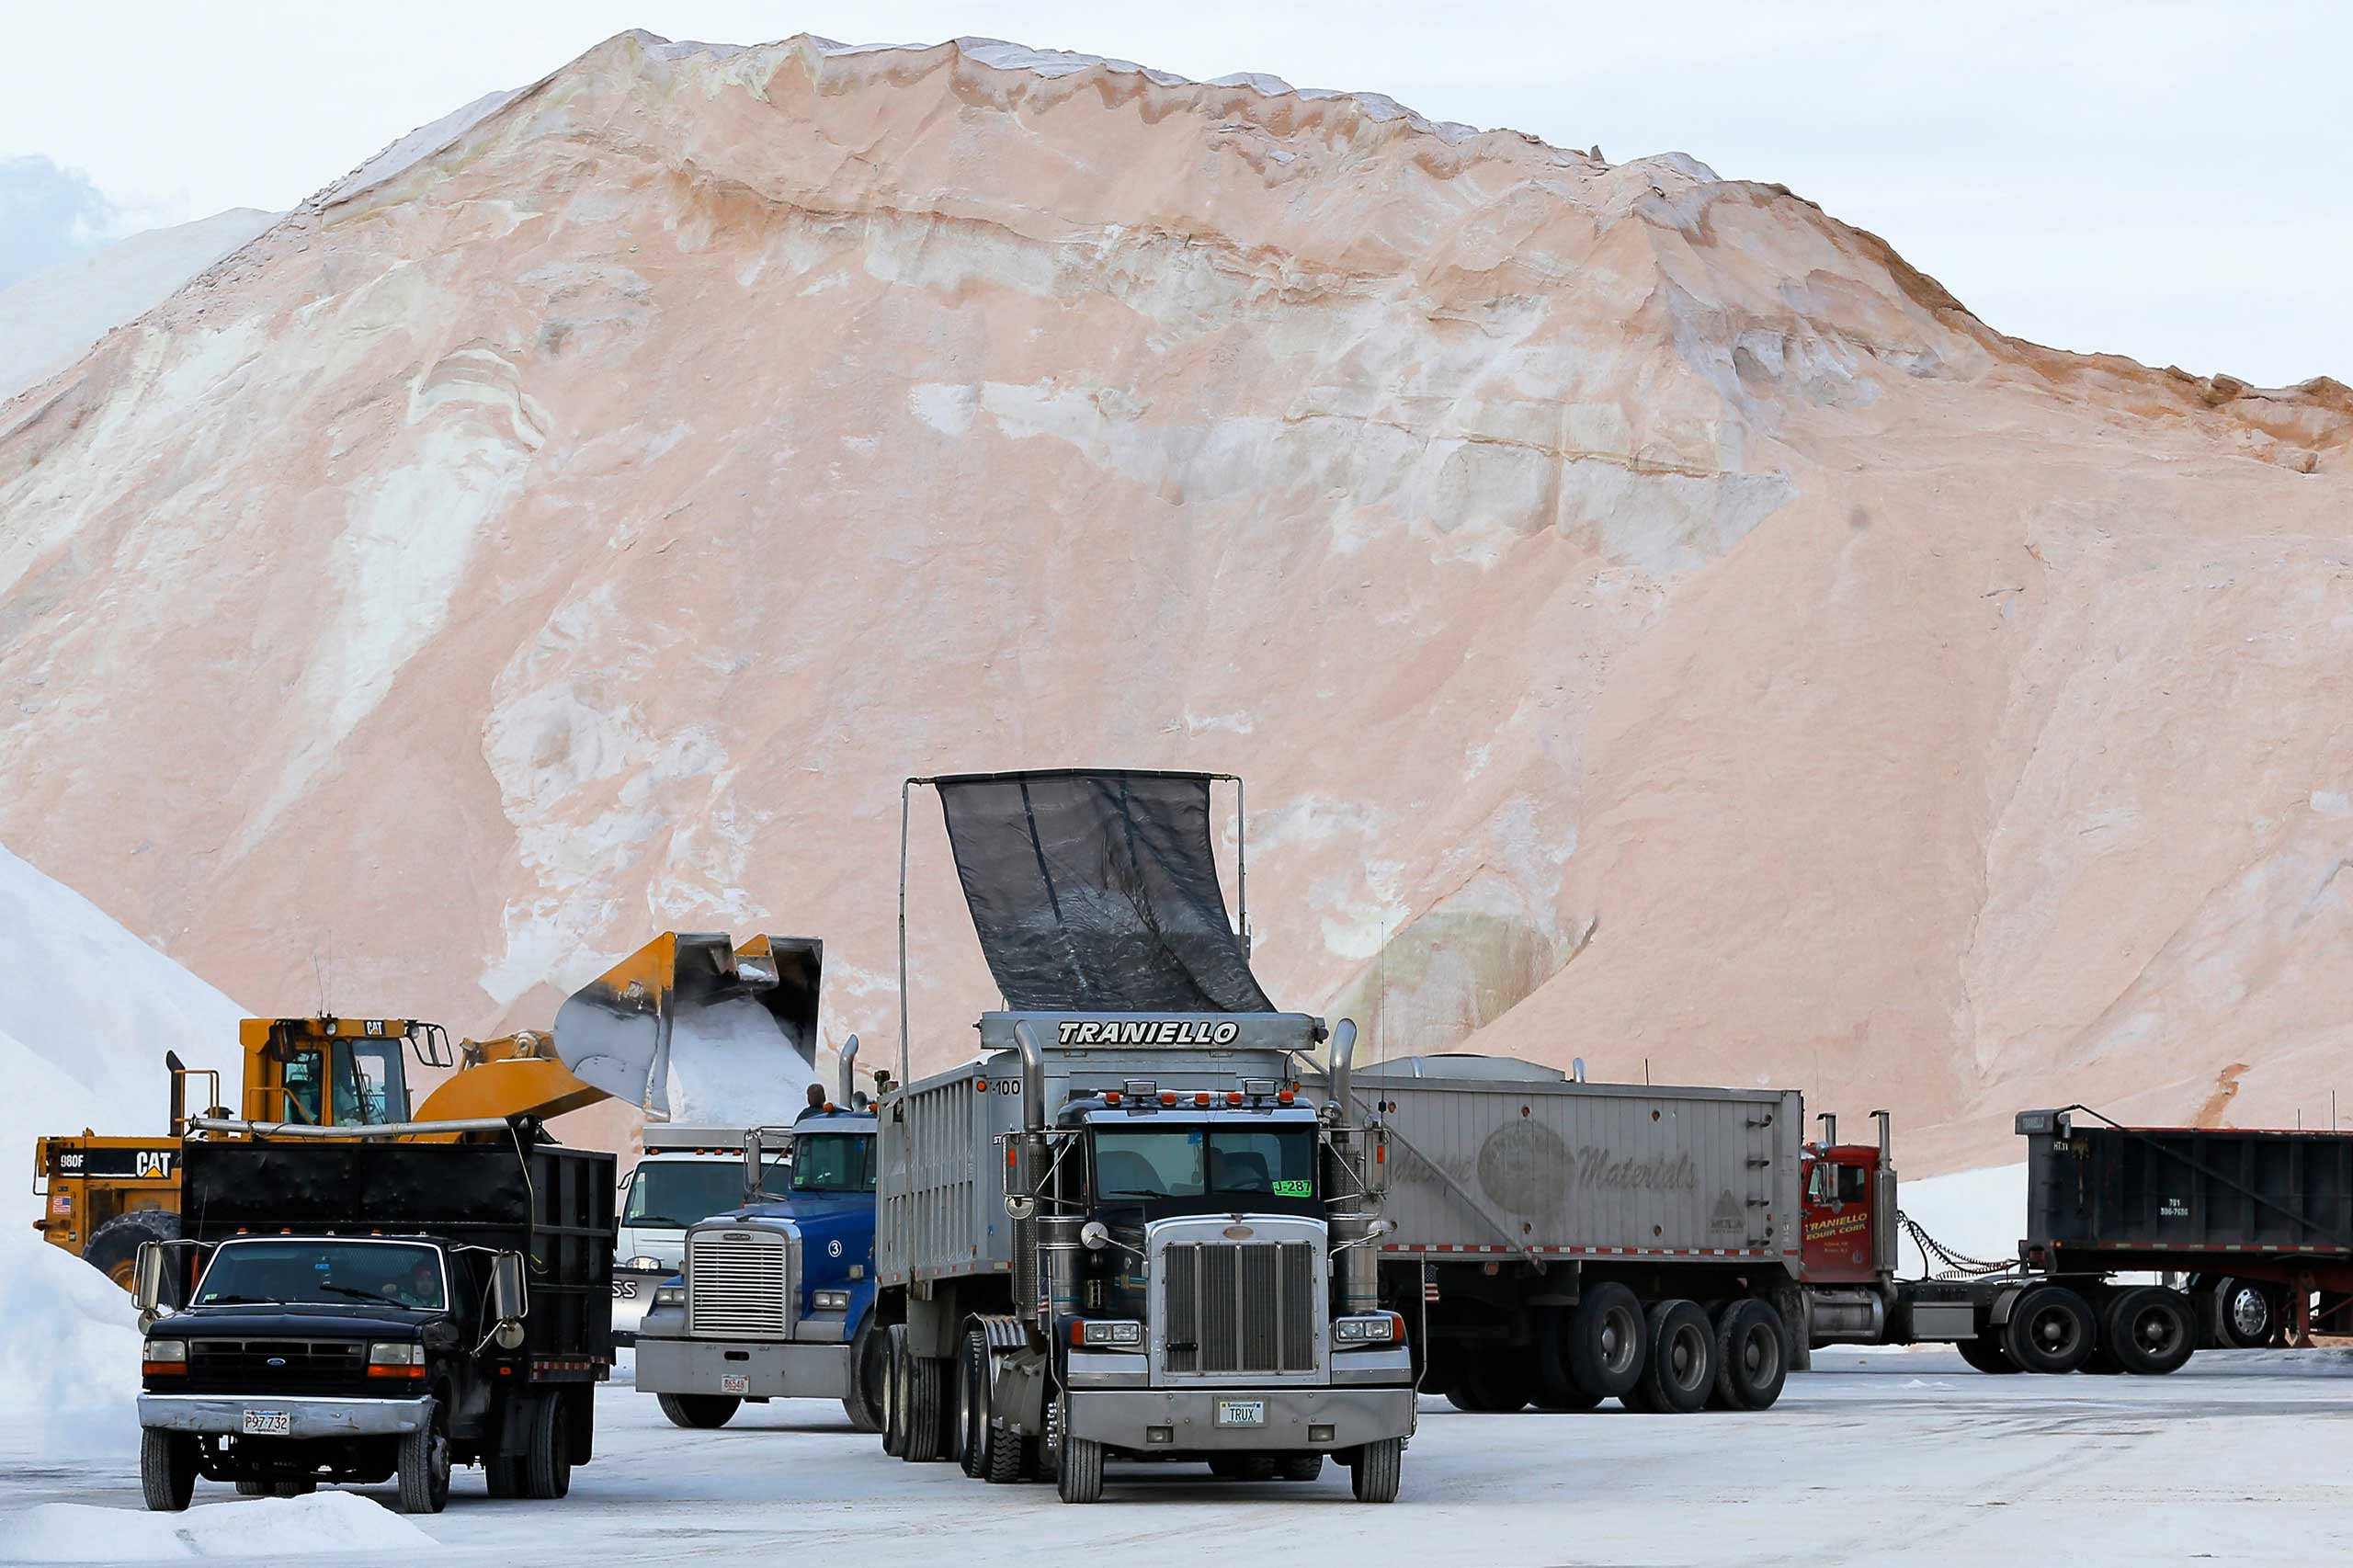 Crews load road salt into trucks ahead of a major winter storm in Chelsea, Mass. on Jan. 26, 2015.